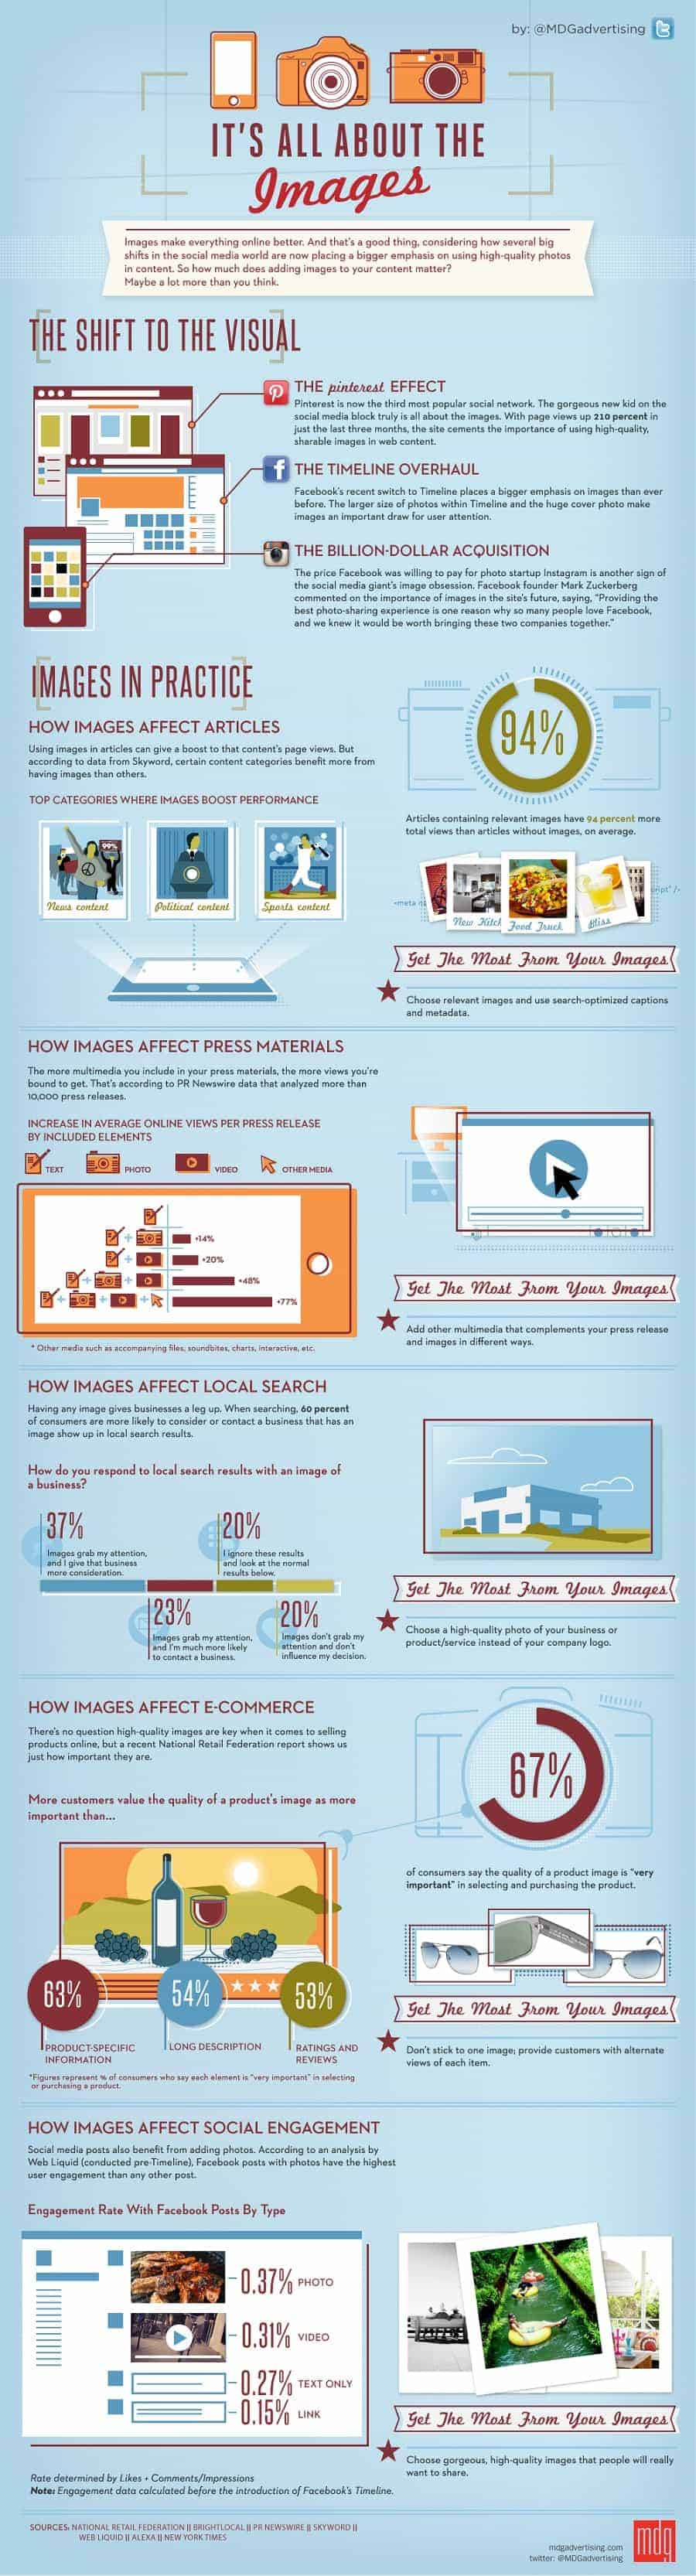 importance of website images infographic